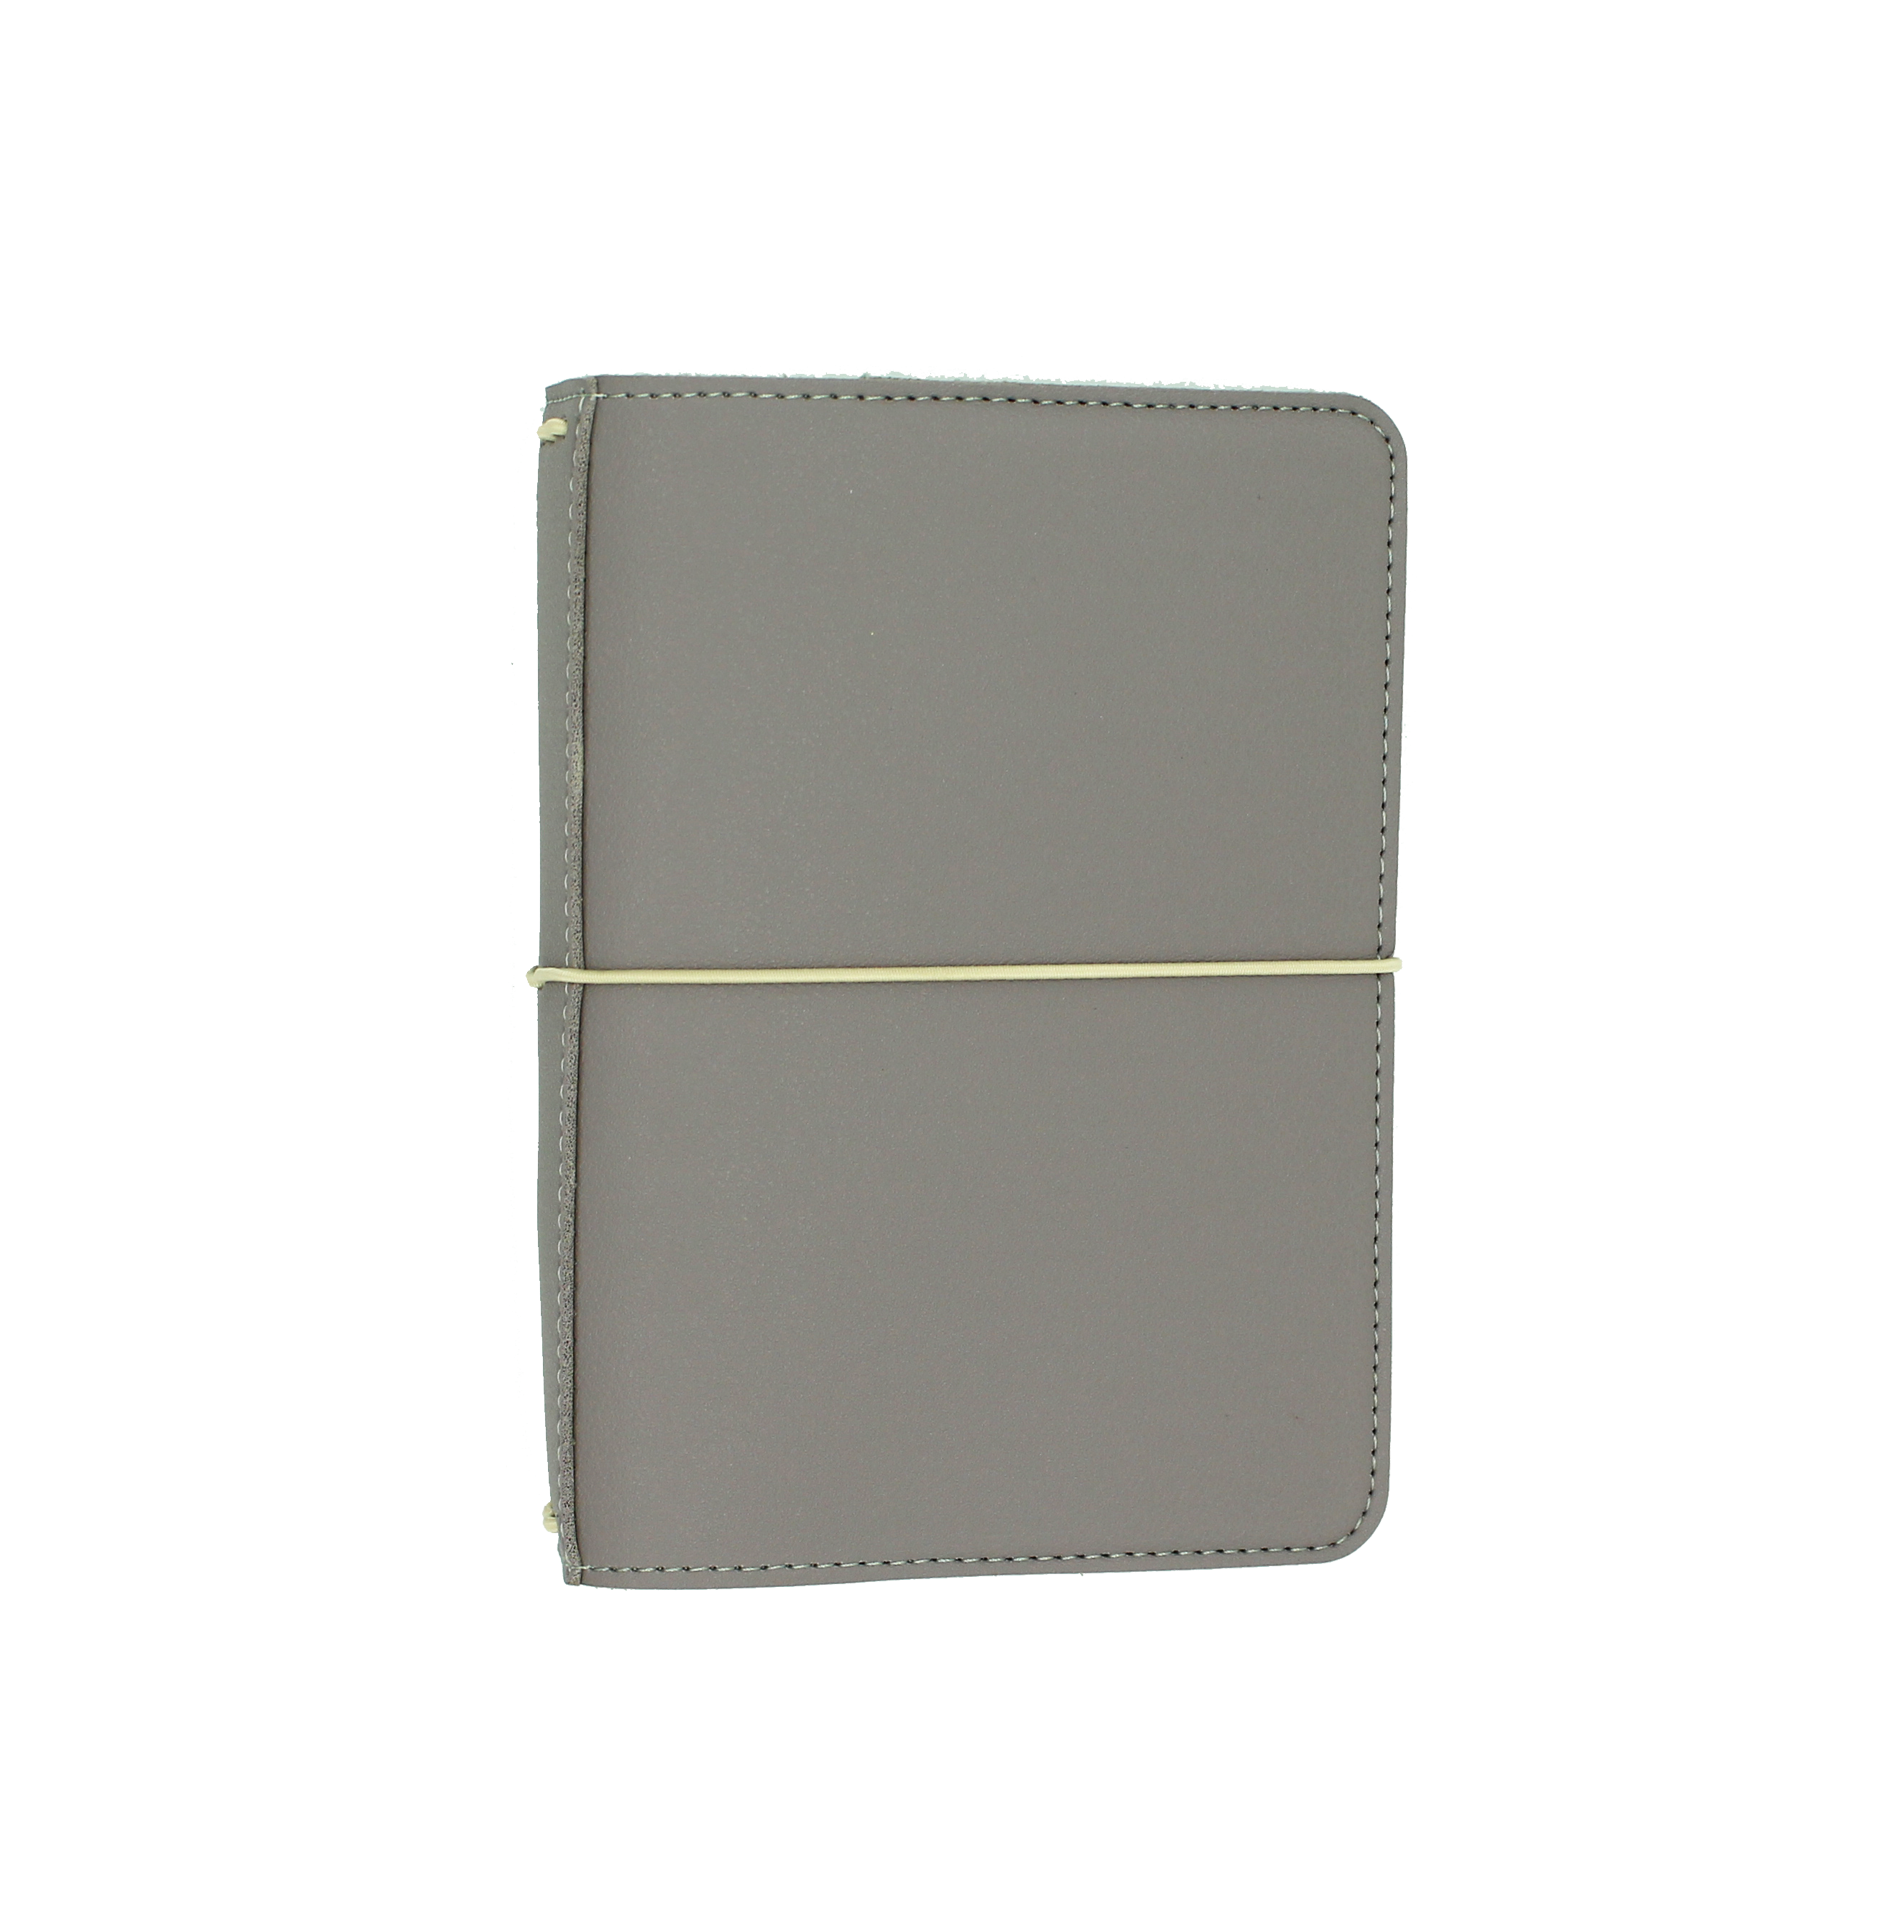 Perfect Fit B6 Travelers Notebook - Stargazer